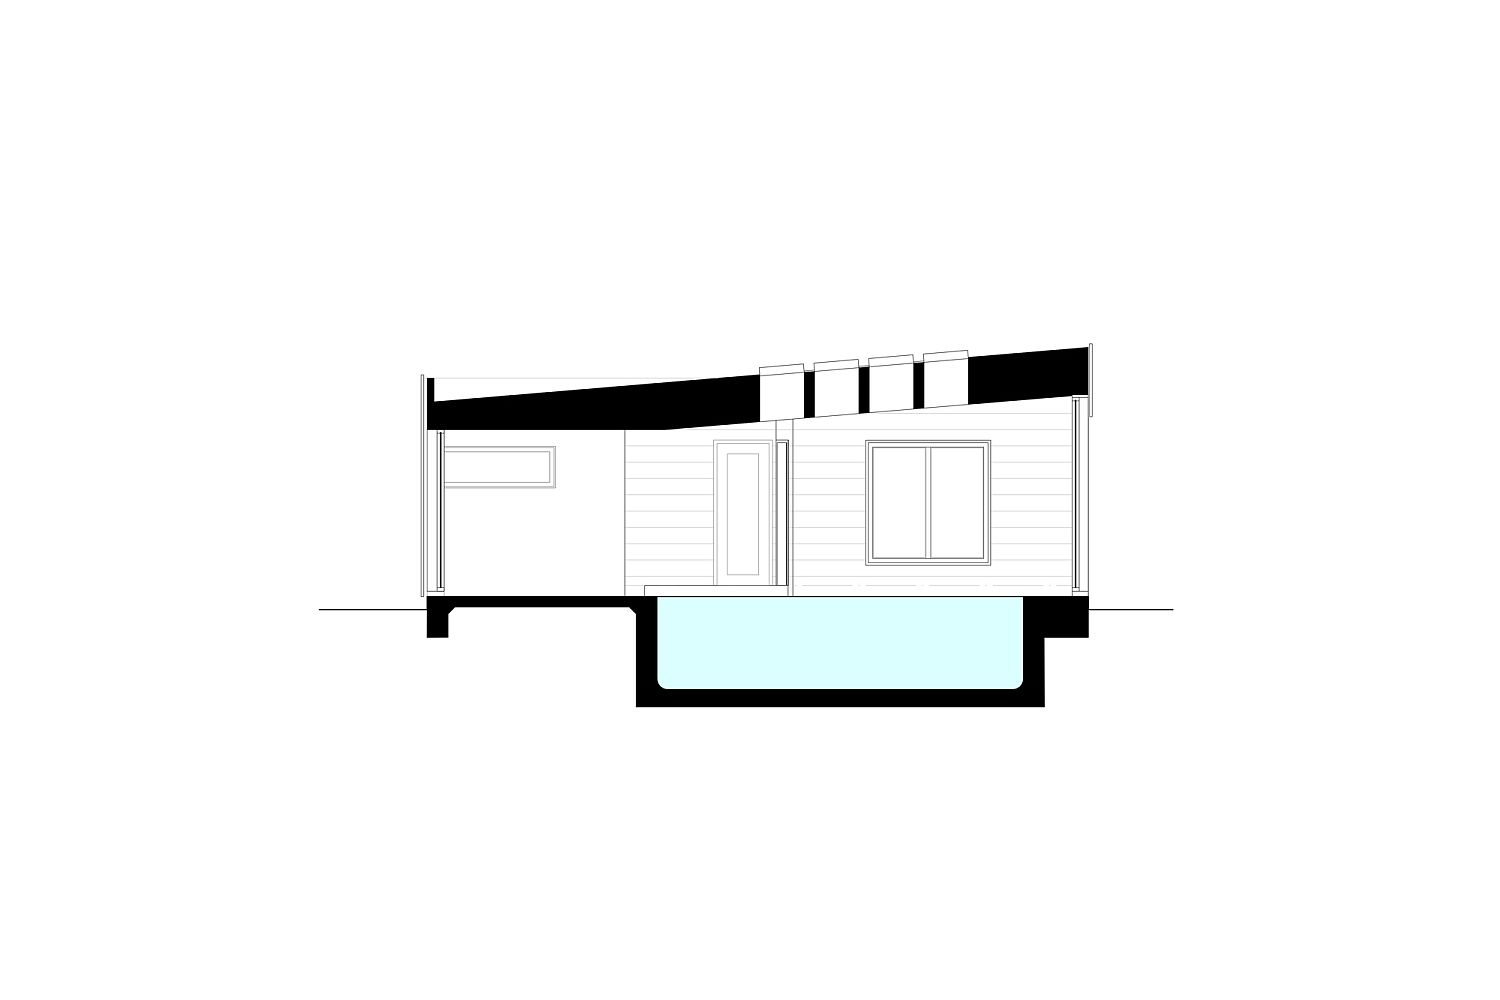 Sectional view of the pool house